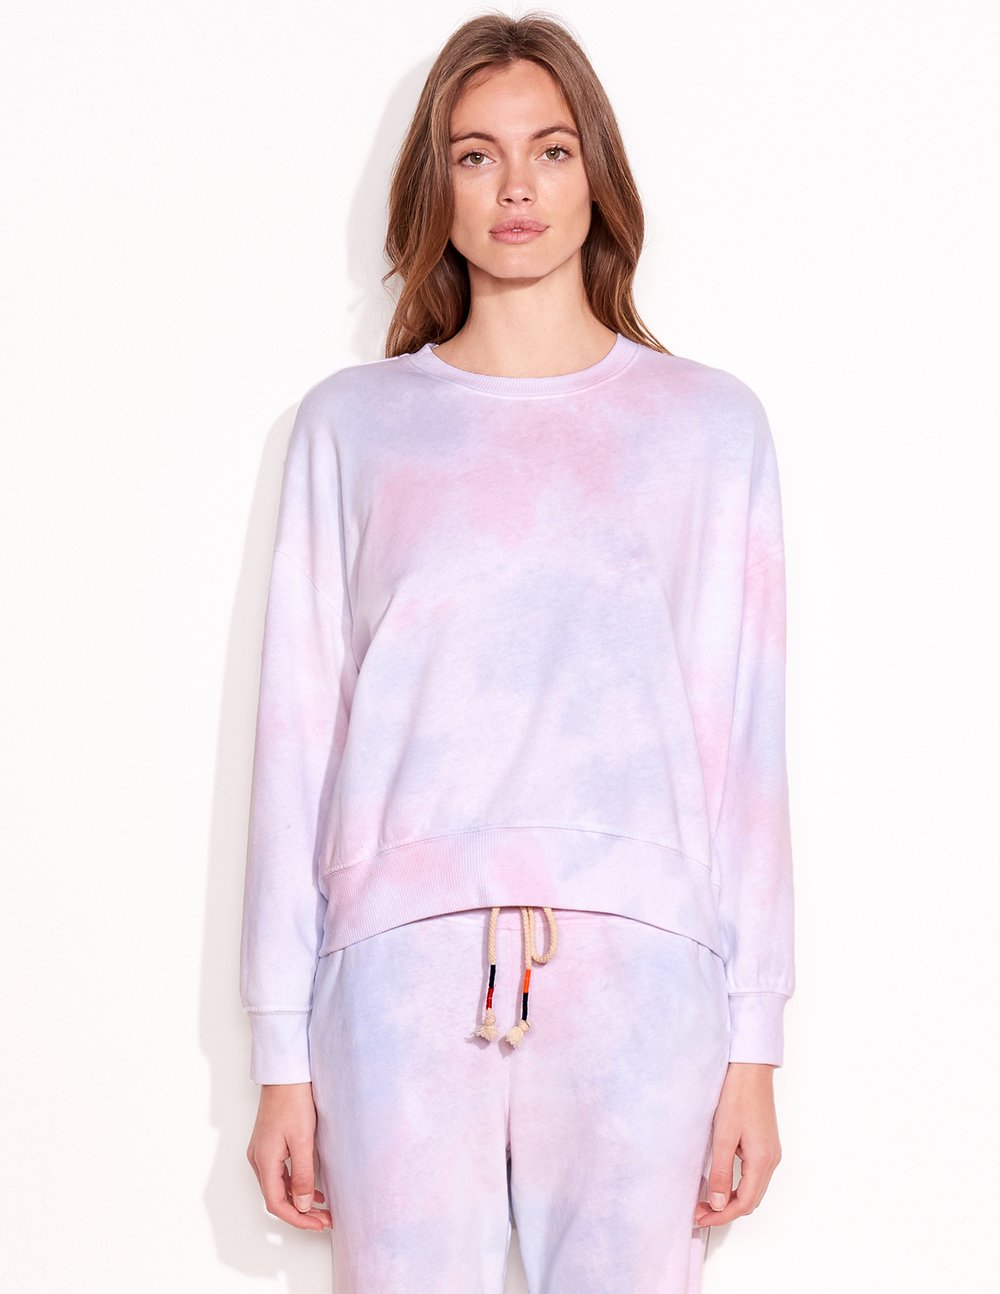 Fleece Tiedye Sweatshirt